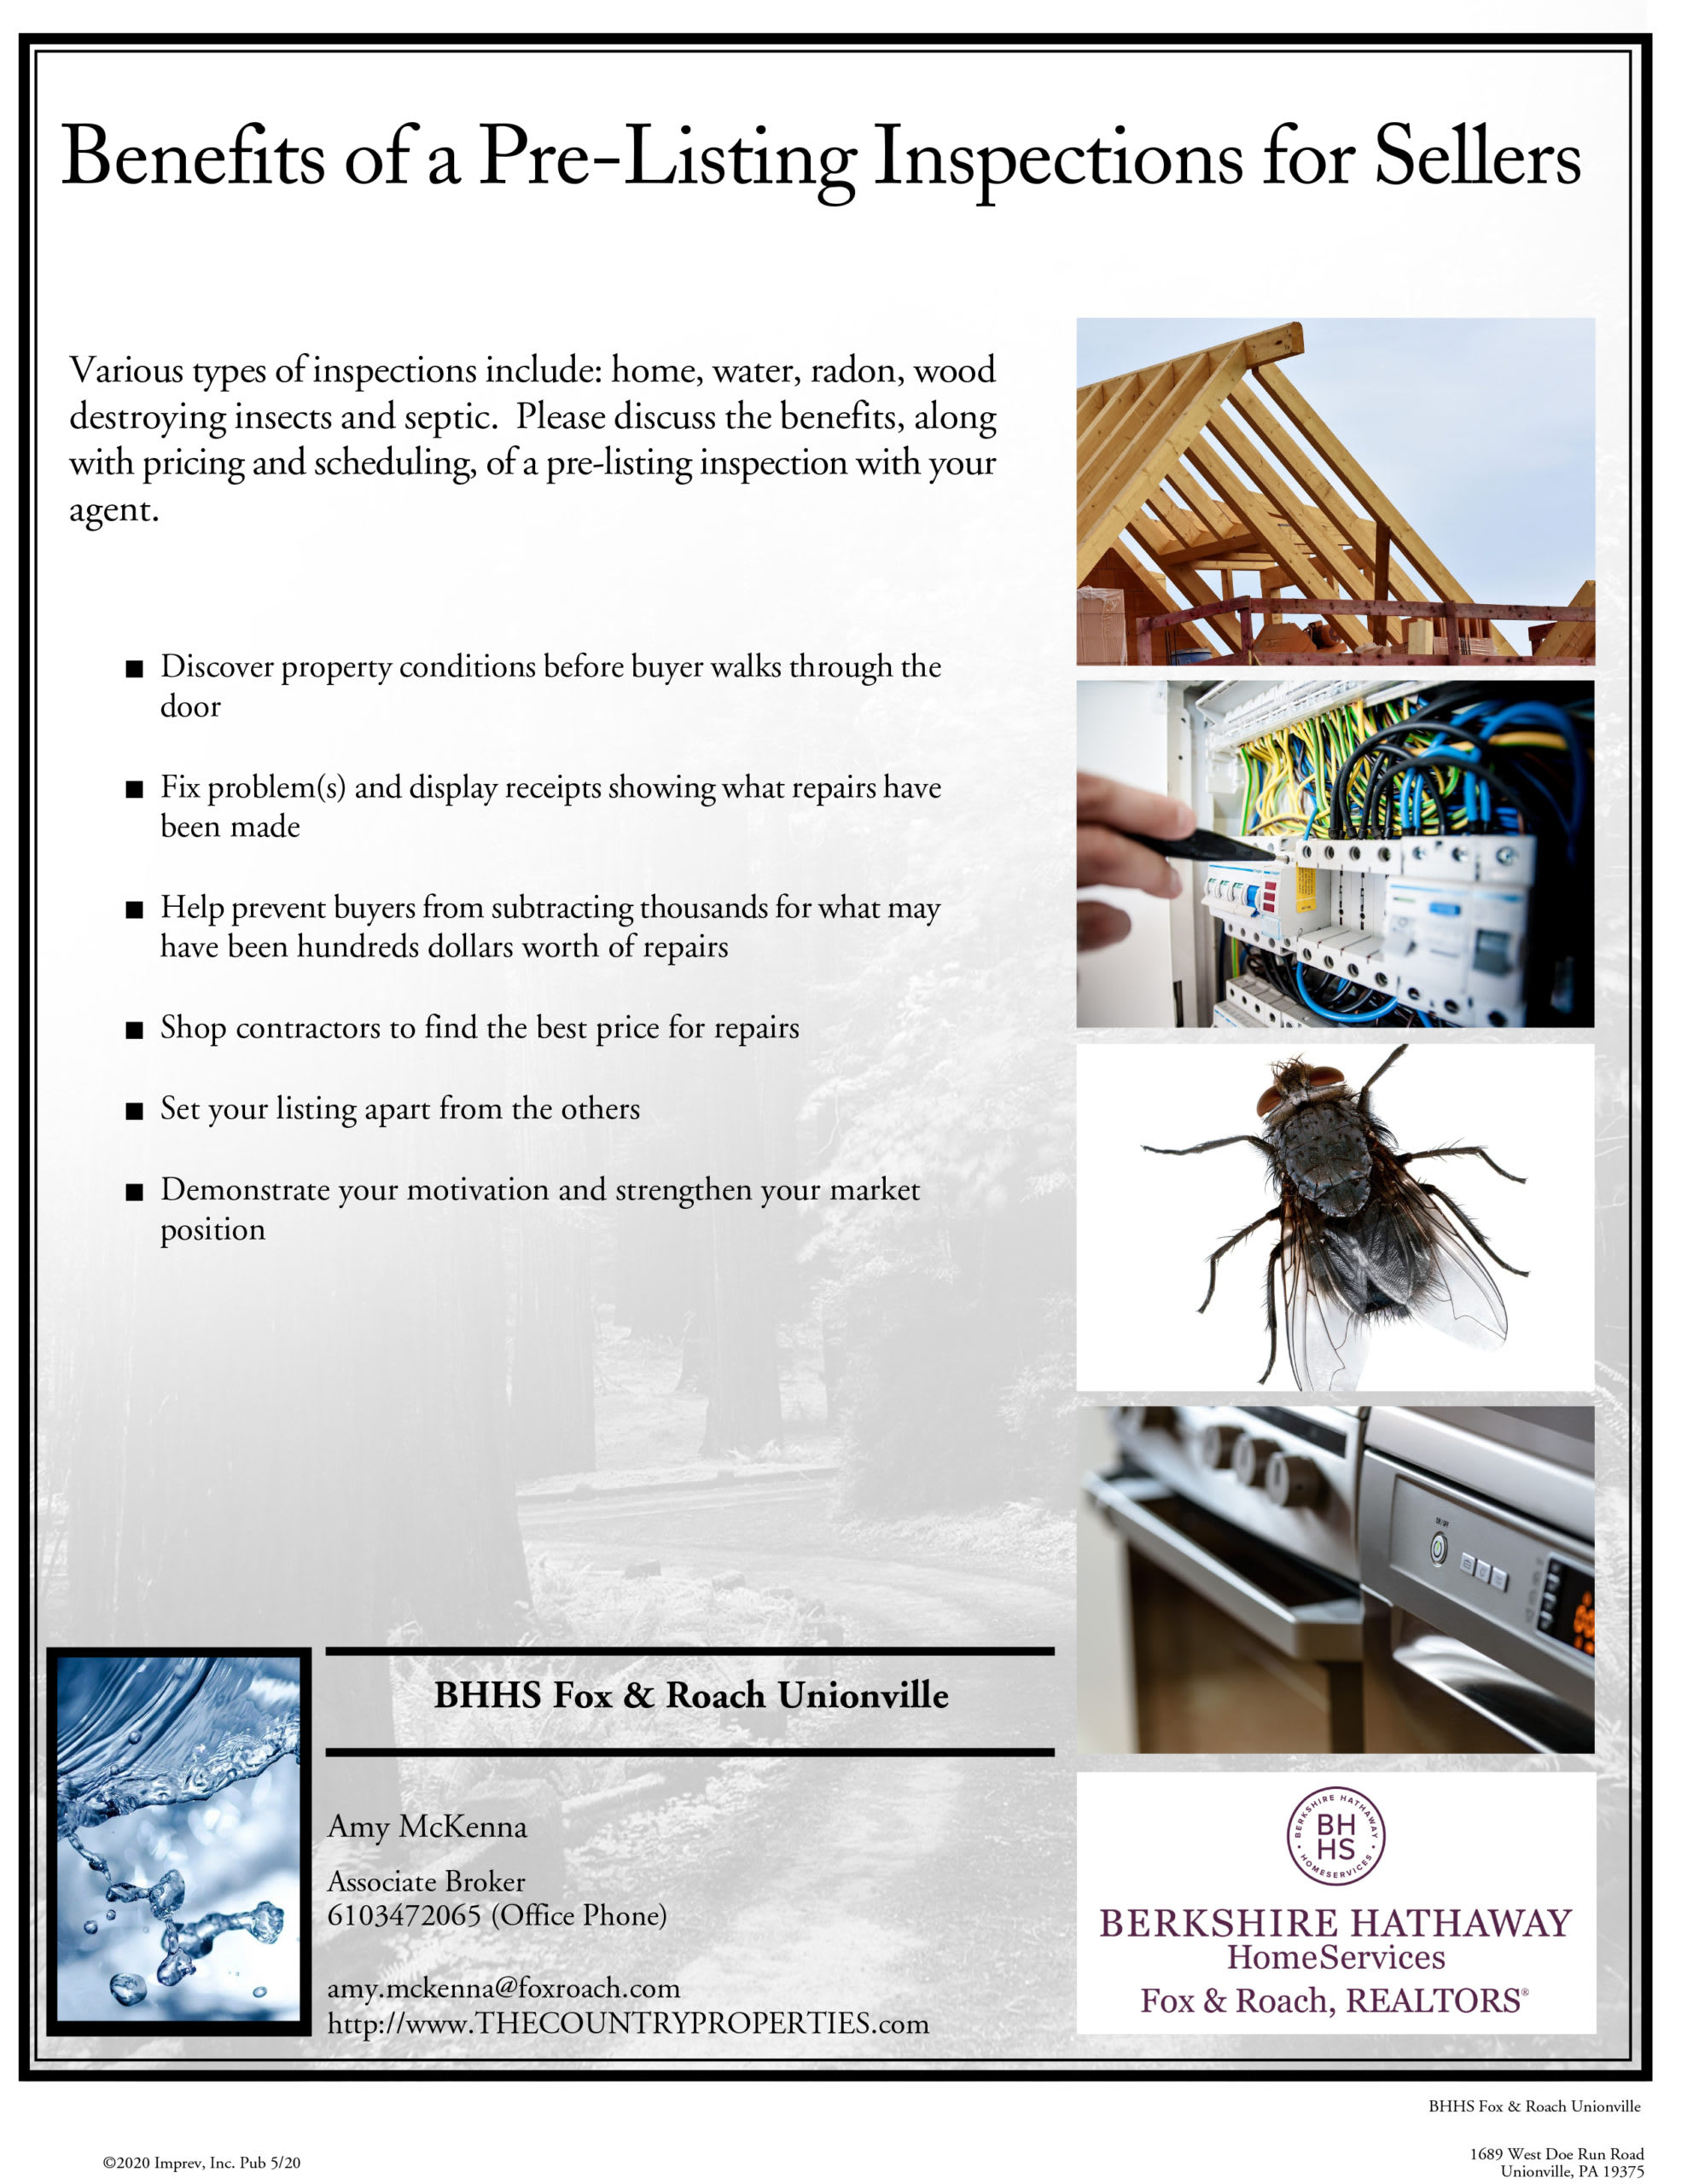 Benefits of Pre-ListingInspections